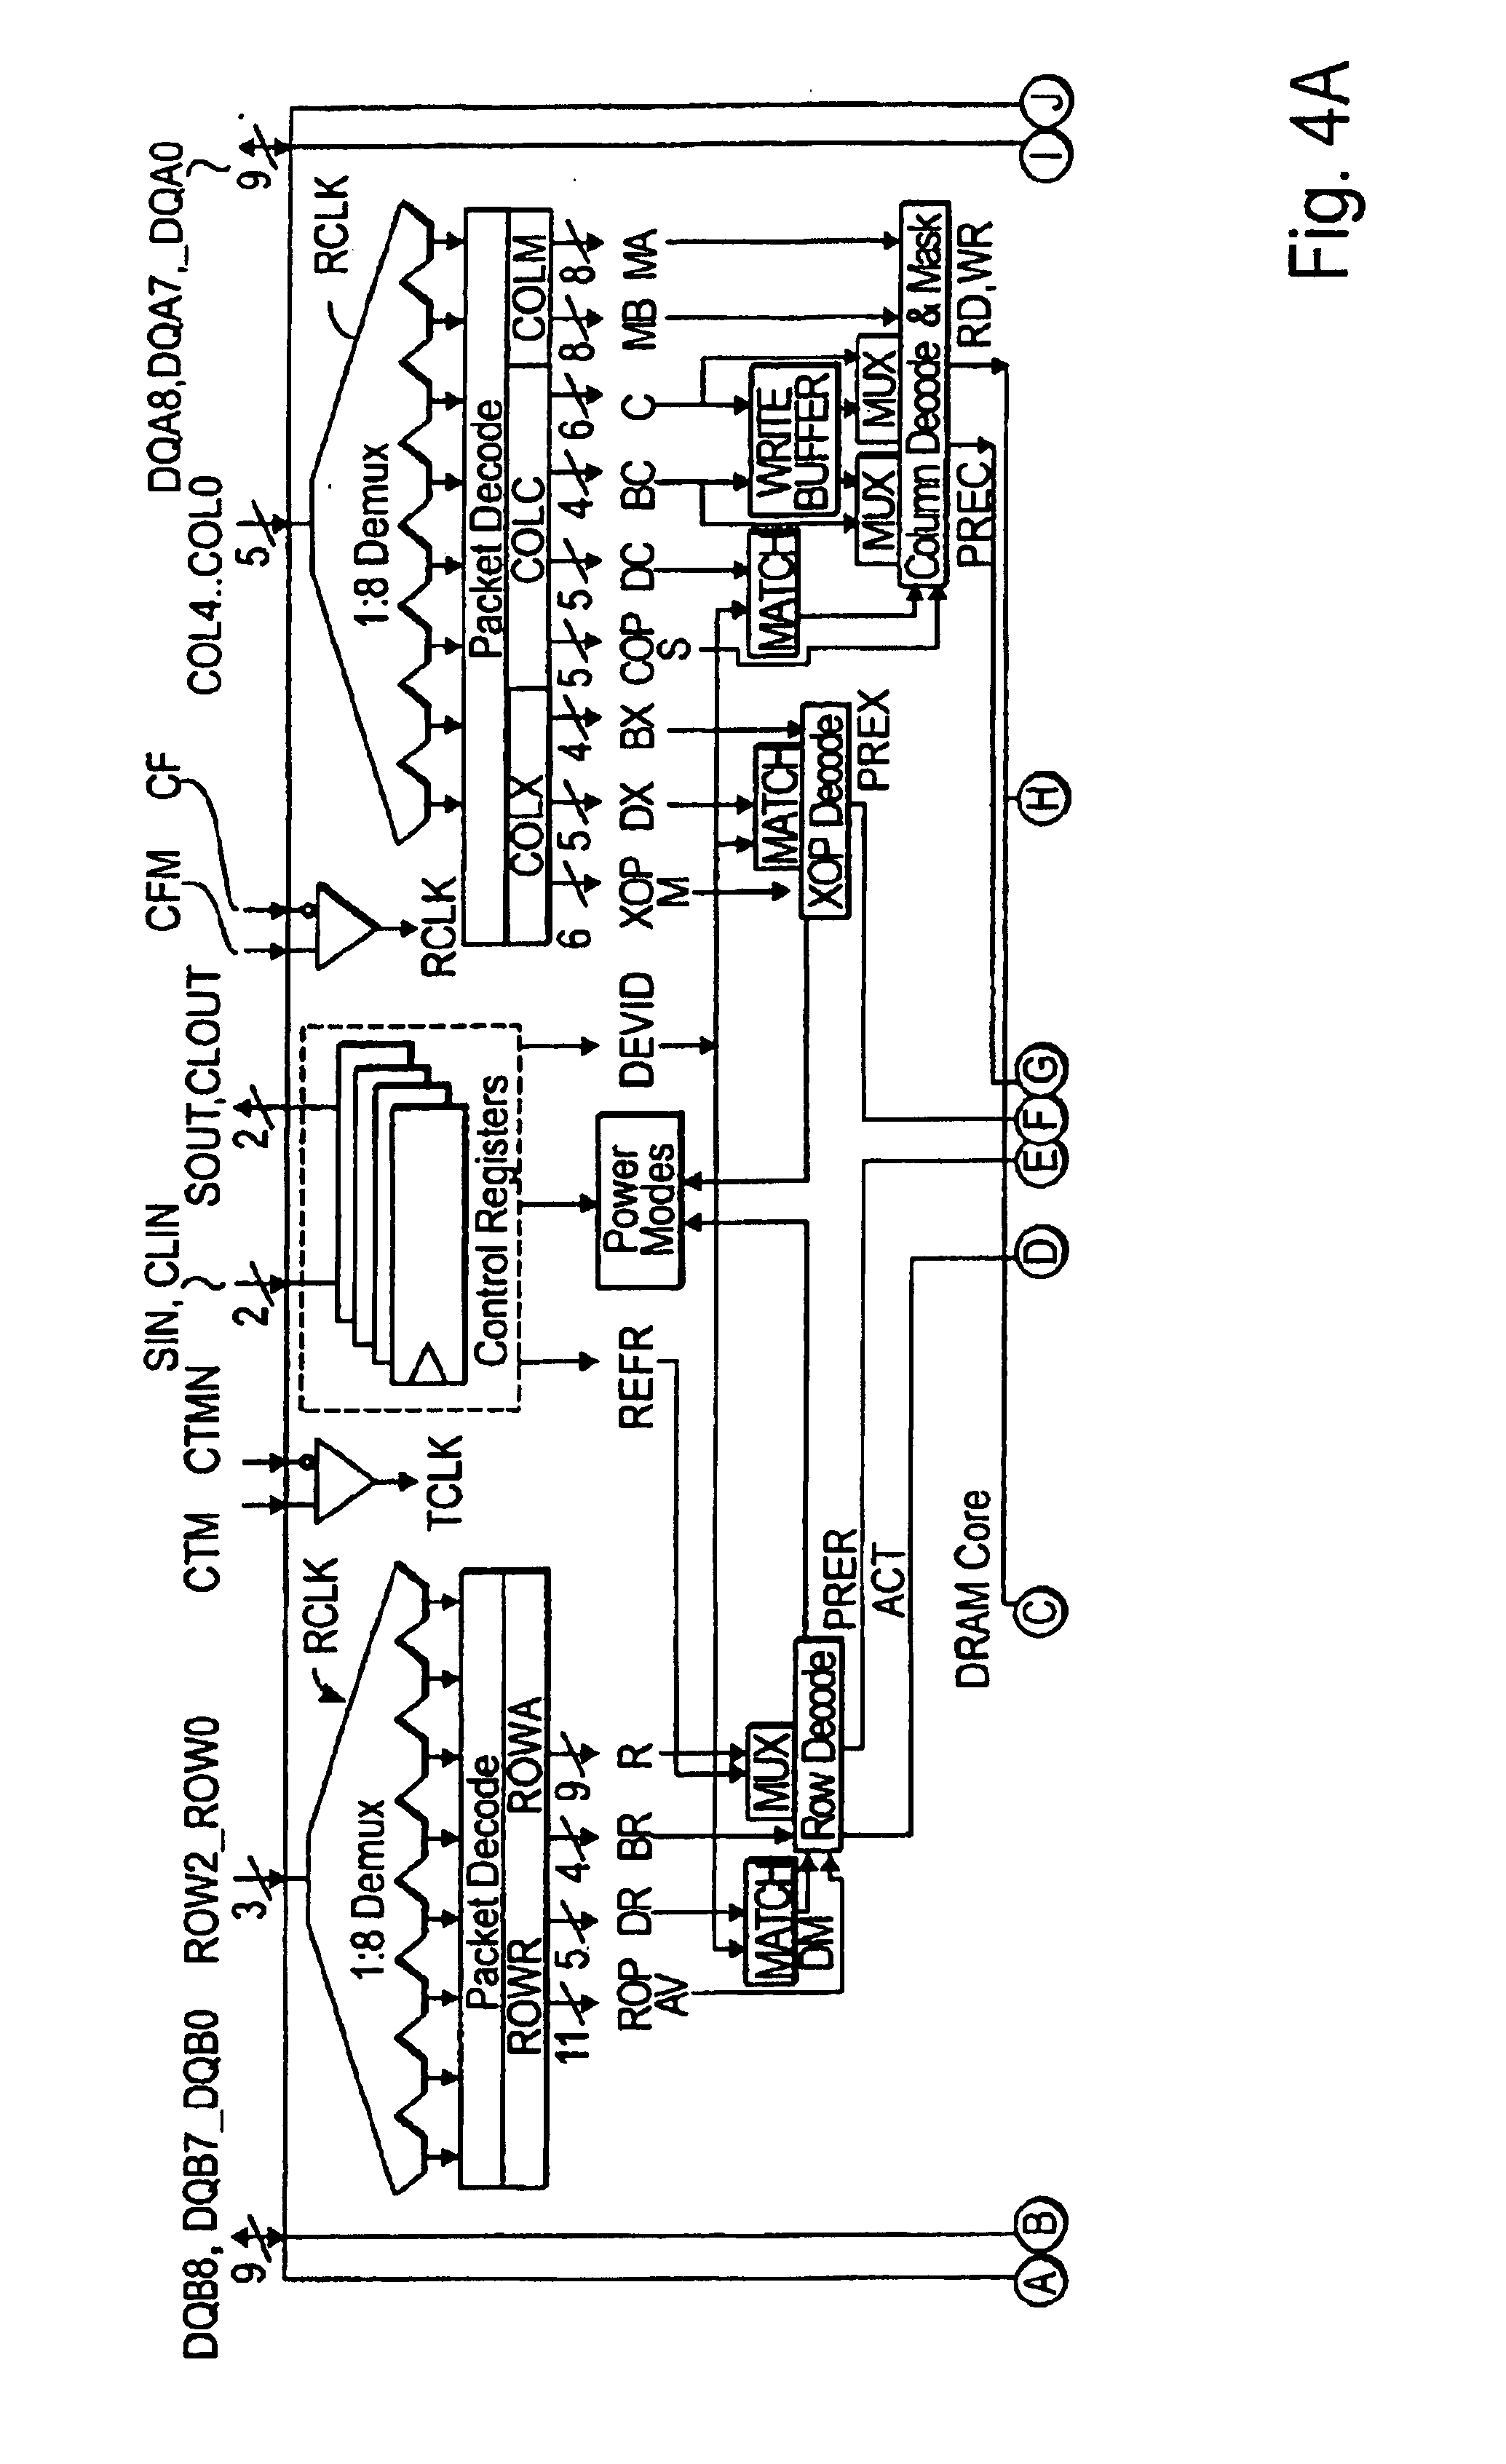 Patent Us6842864 Method And Apparatus For Configuring Access Times 1 To 8 Demultiplexer Logic Diagram Drawing